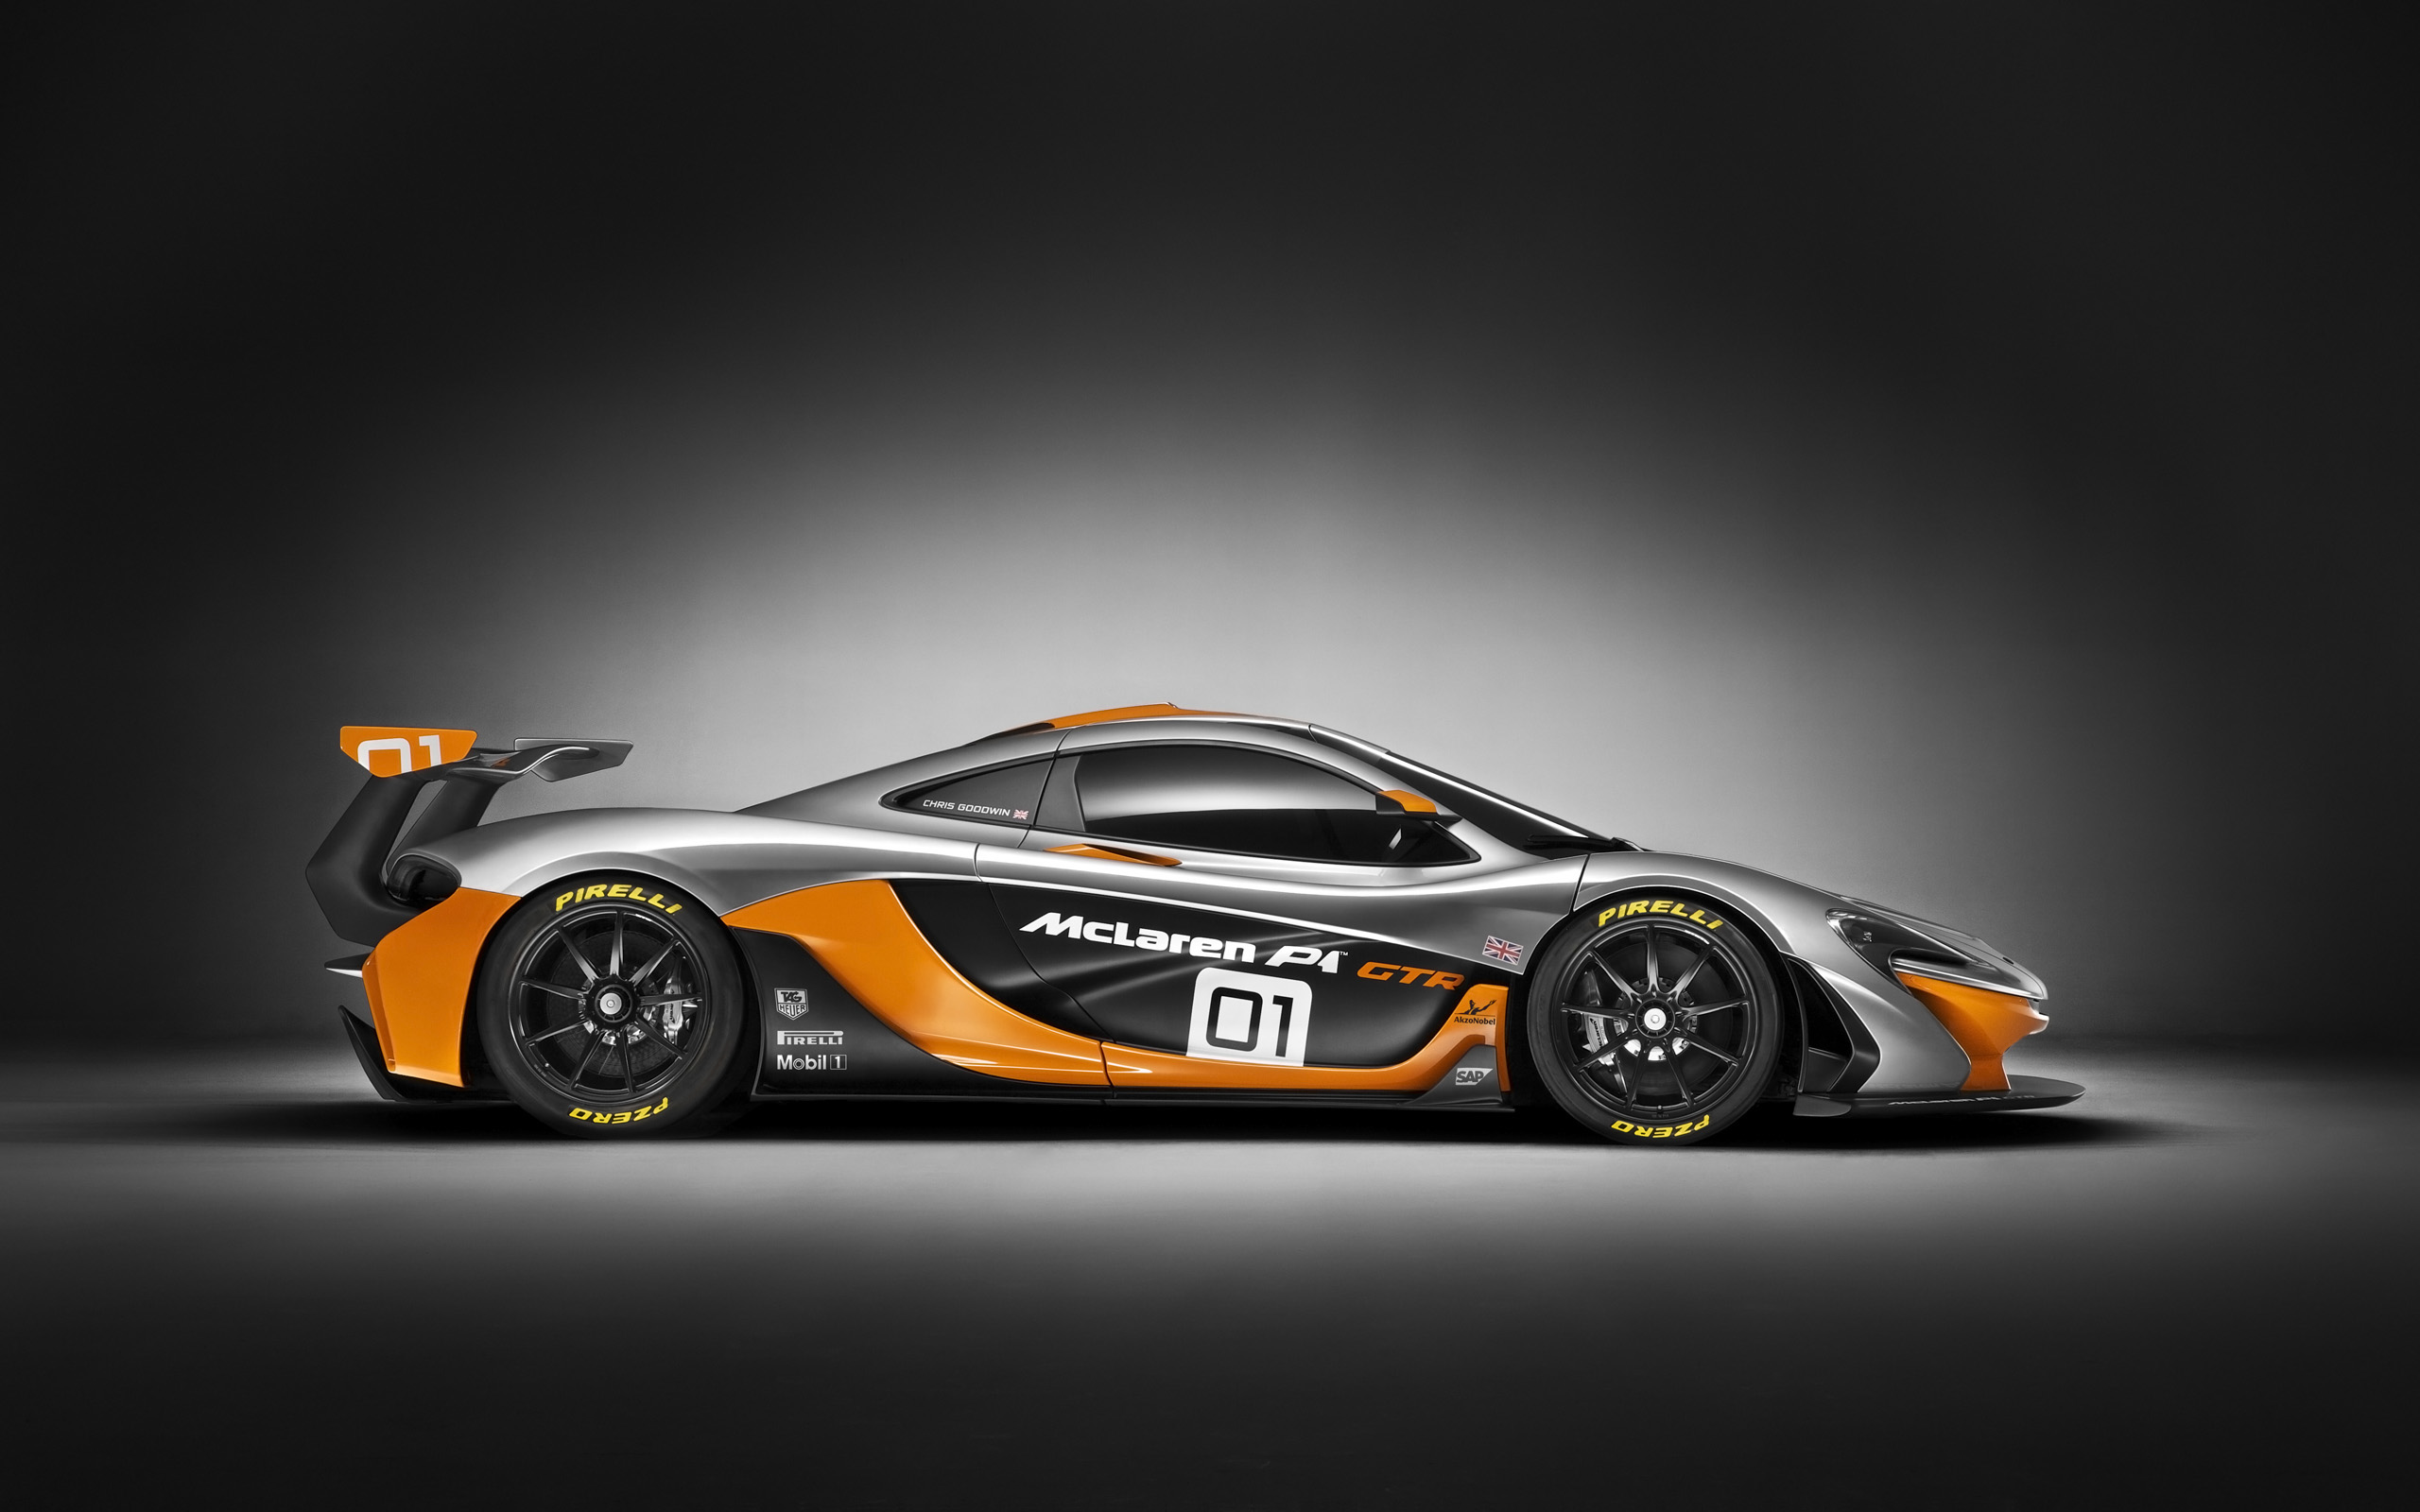 2014 mclaren p1 gtr design concept 5 wallpaper hd car. Black Bedroom Furniture Sets. Home Design Ideas